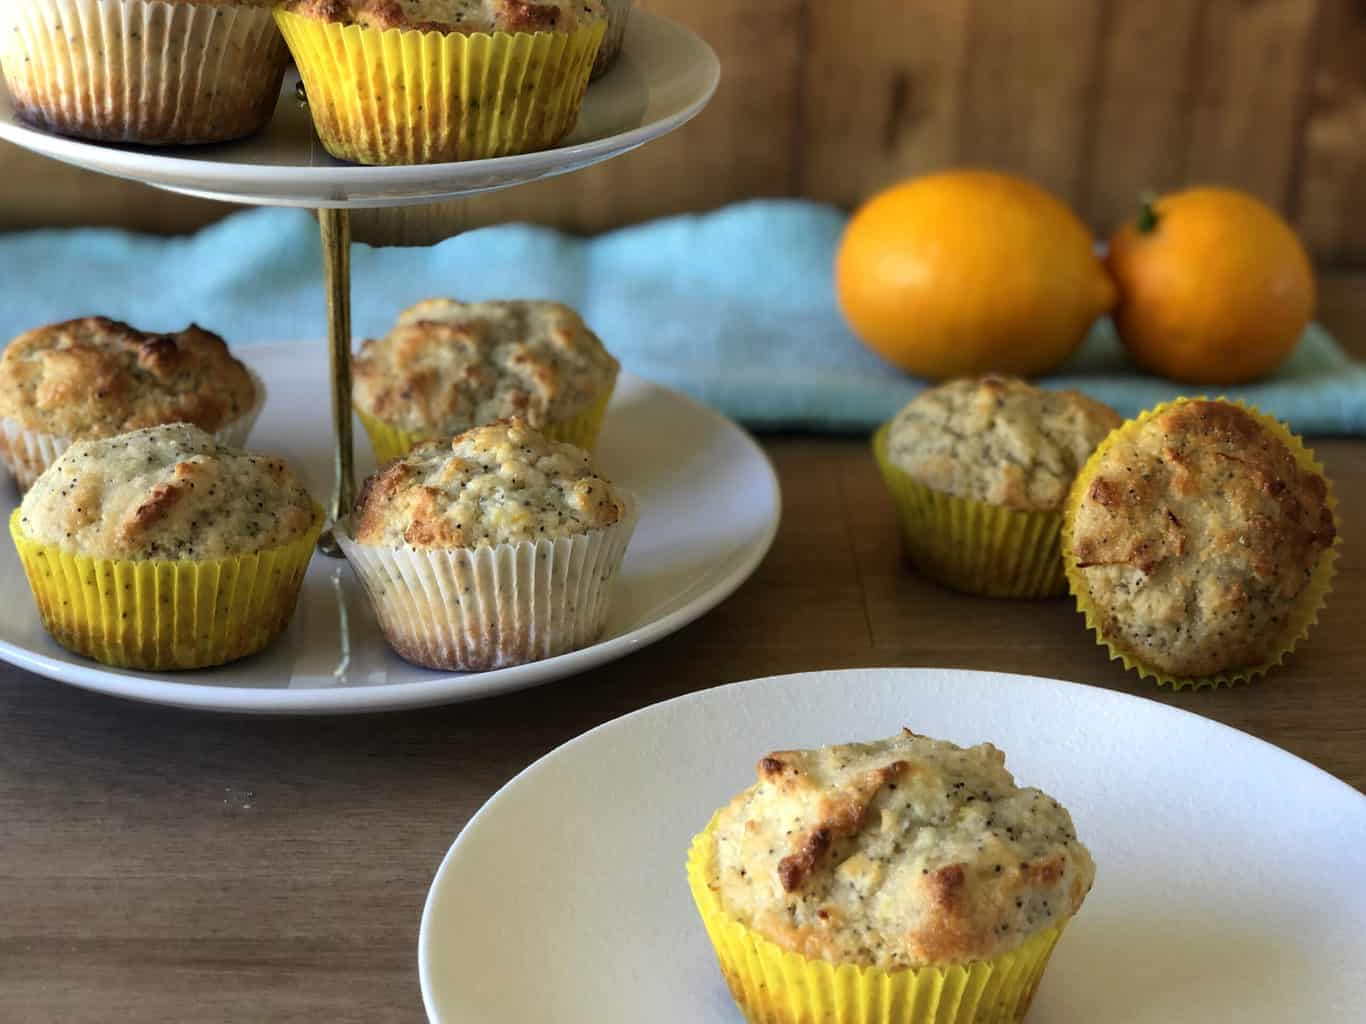 Tiered plate of lemon muffins with two fresh lemons and other muffins scattered around